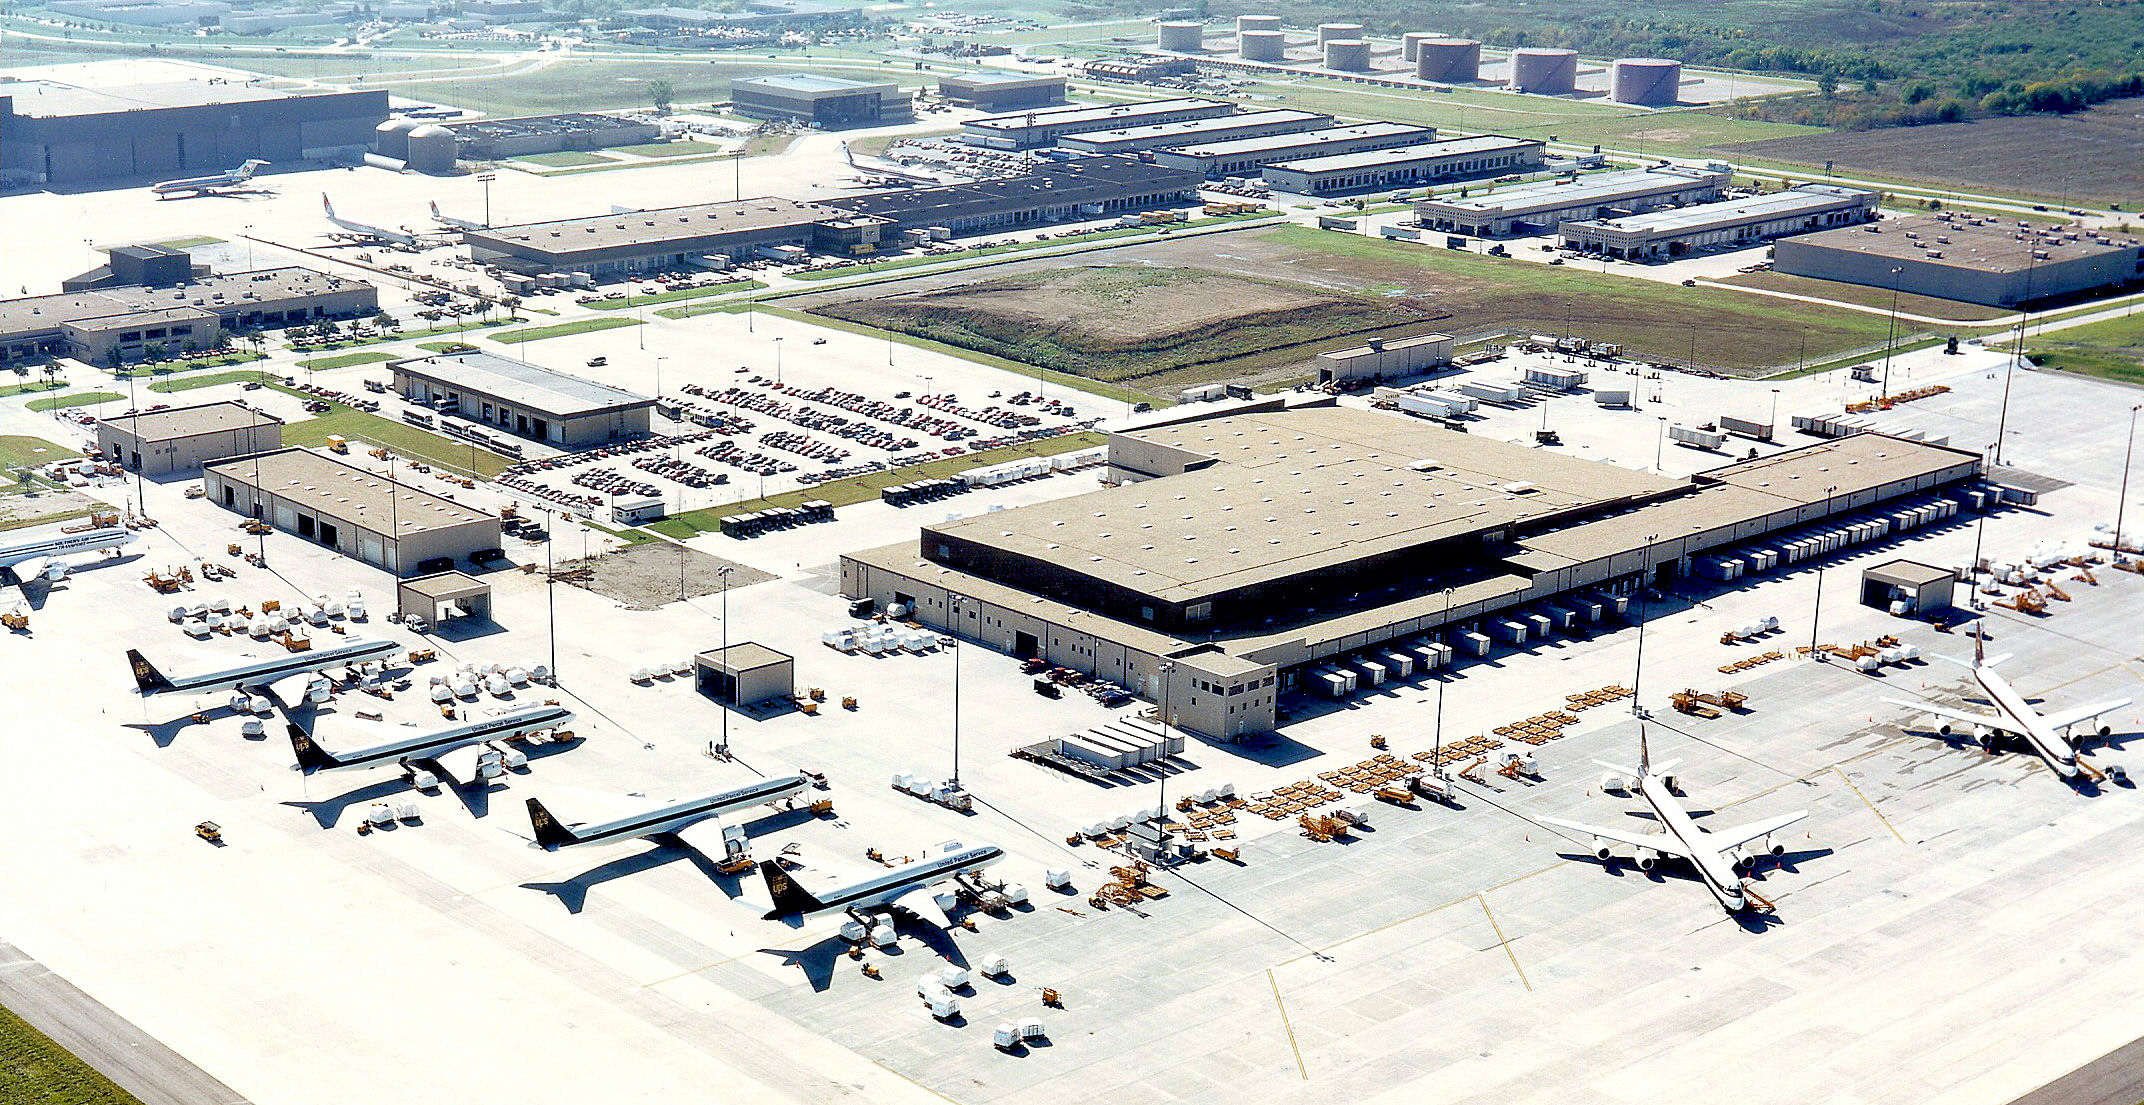 UPS Regional Air Cargo Distribution Facility at DFW International Airport